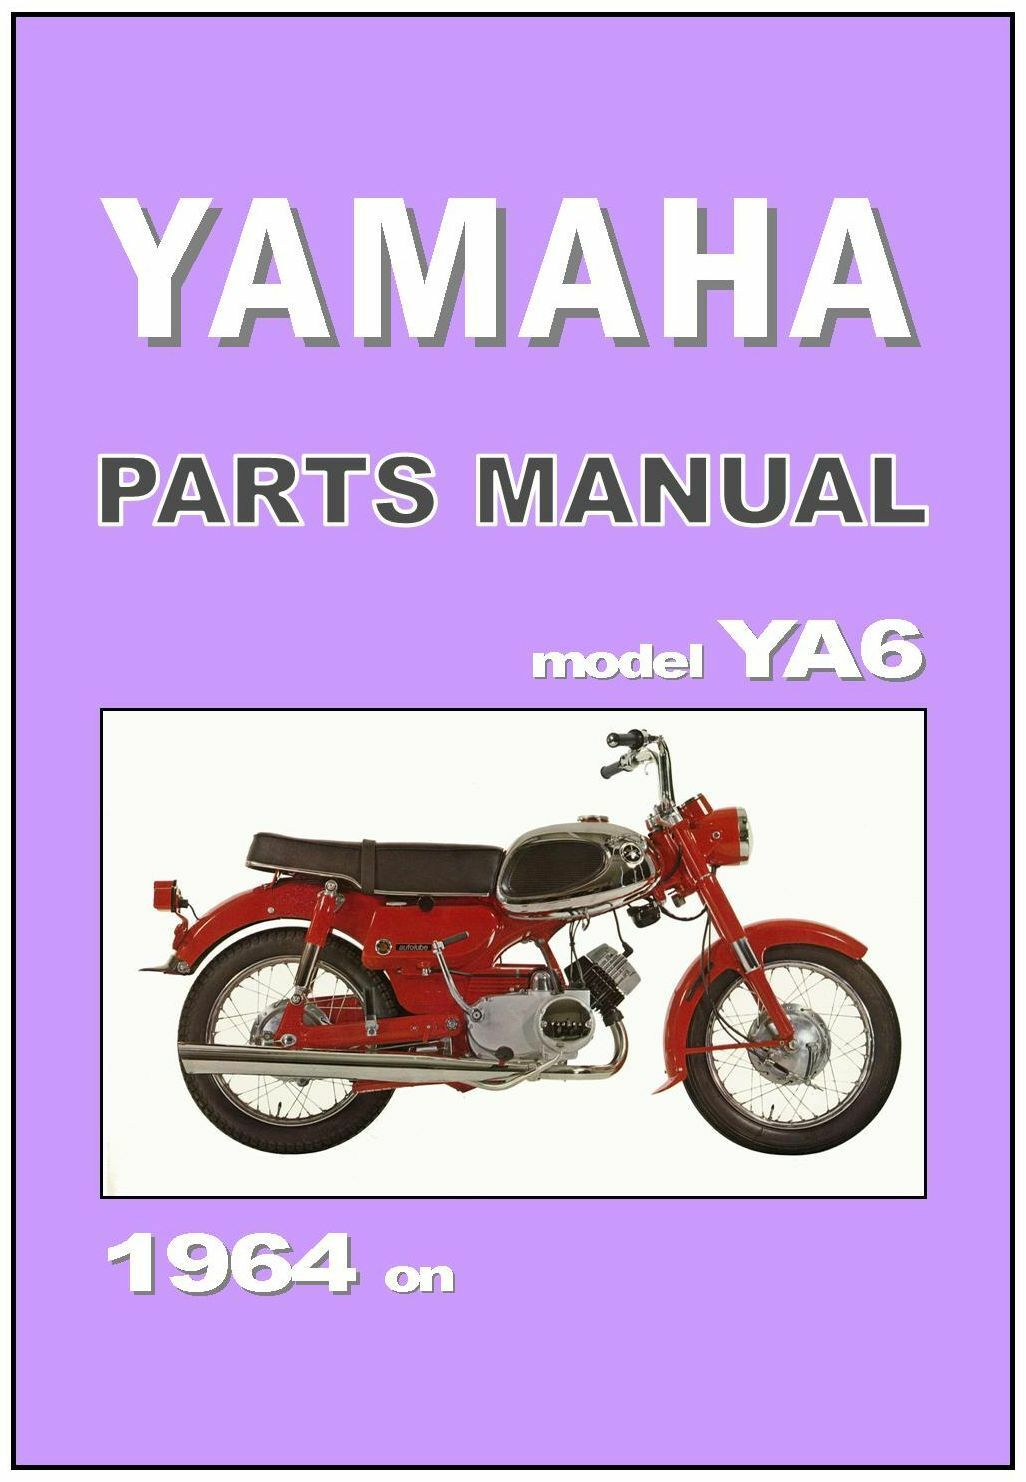 1 of 3Only 1 available YAMAHA Parts Manual YA6 A6 125cc 1964 1965 1966 1967  1968 Spares Catalog List